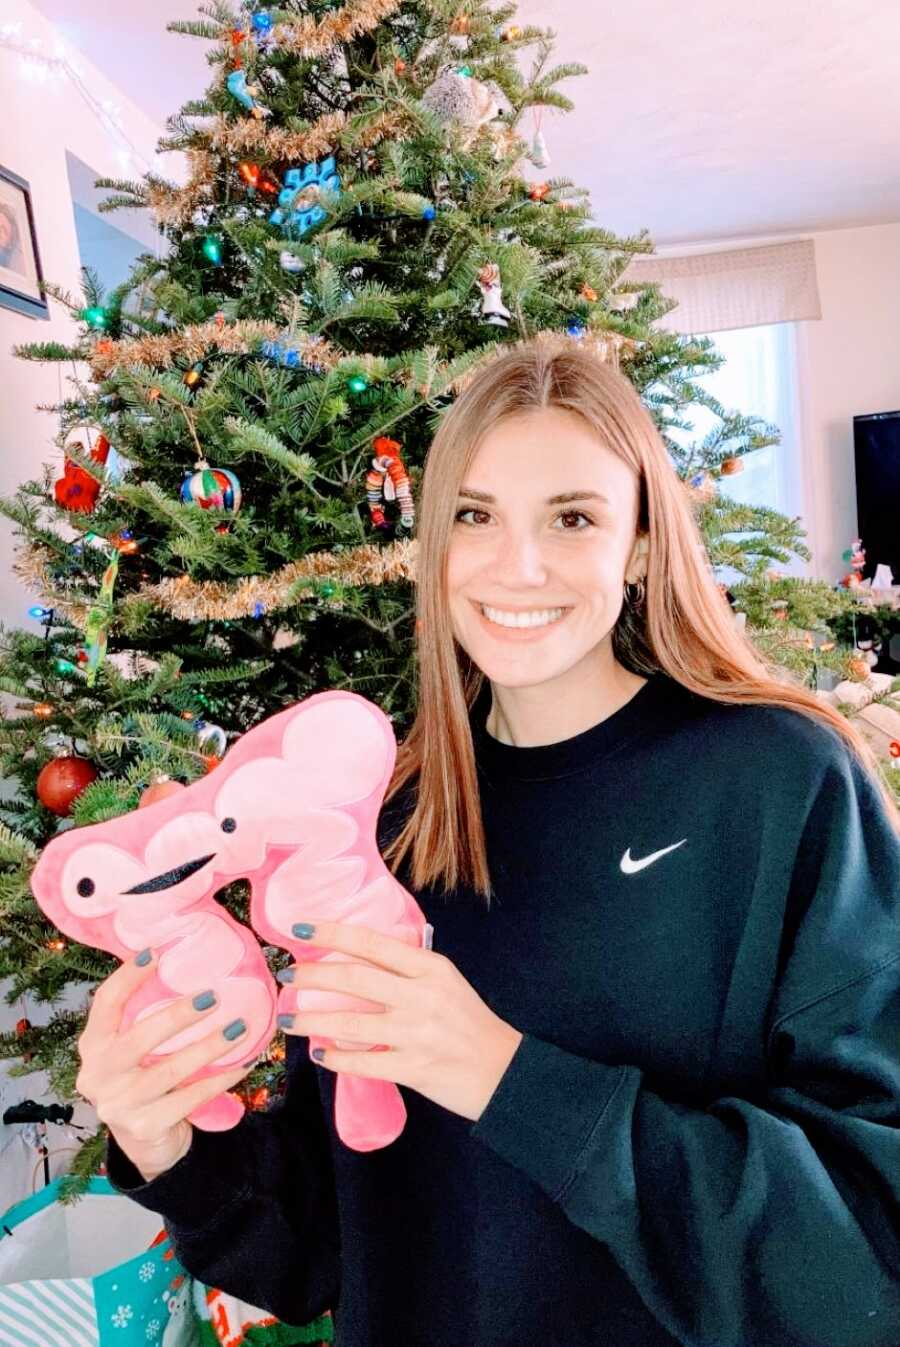 Woman recovering from a colectomy due to ulcerative colitis gets gifted a stuffed colon for Christmas